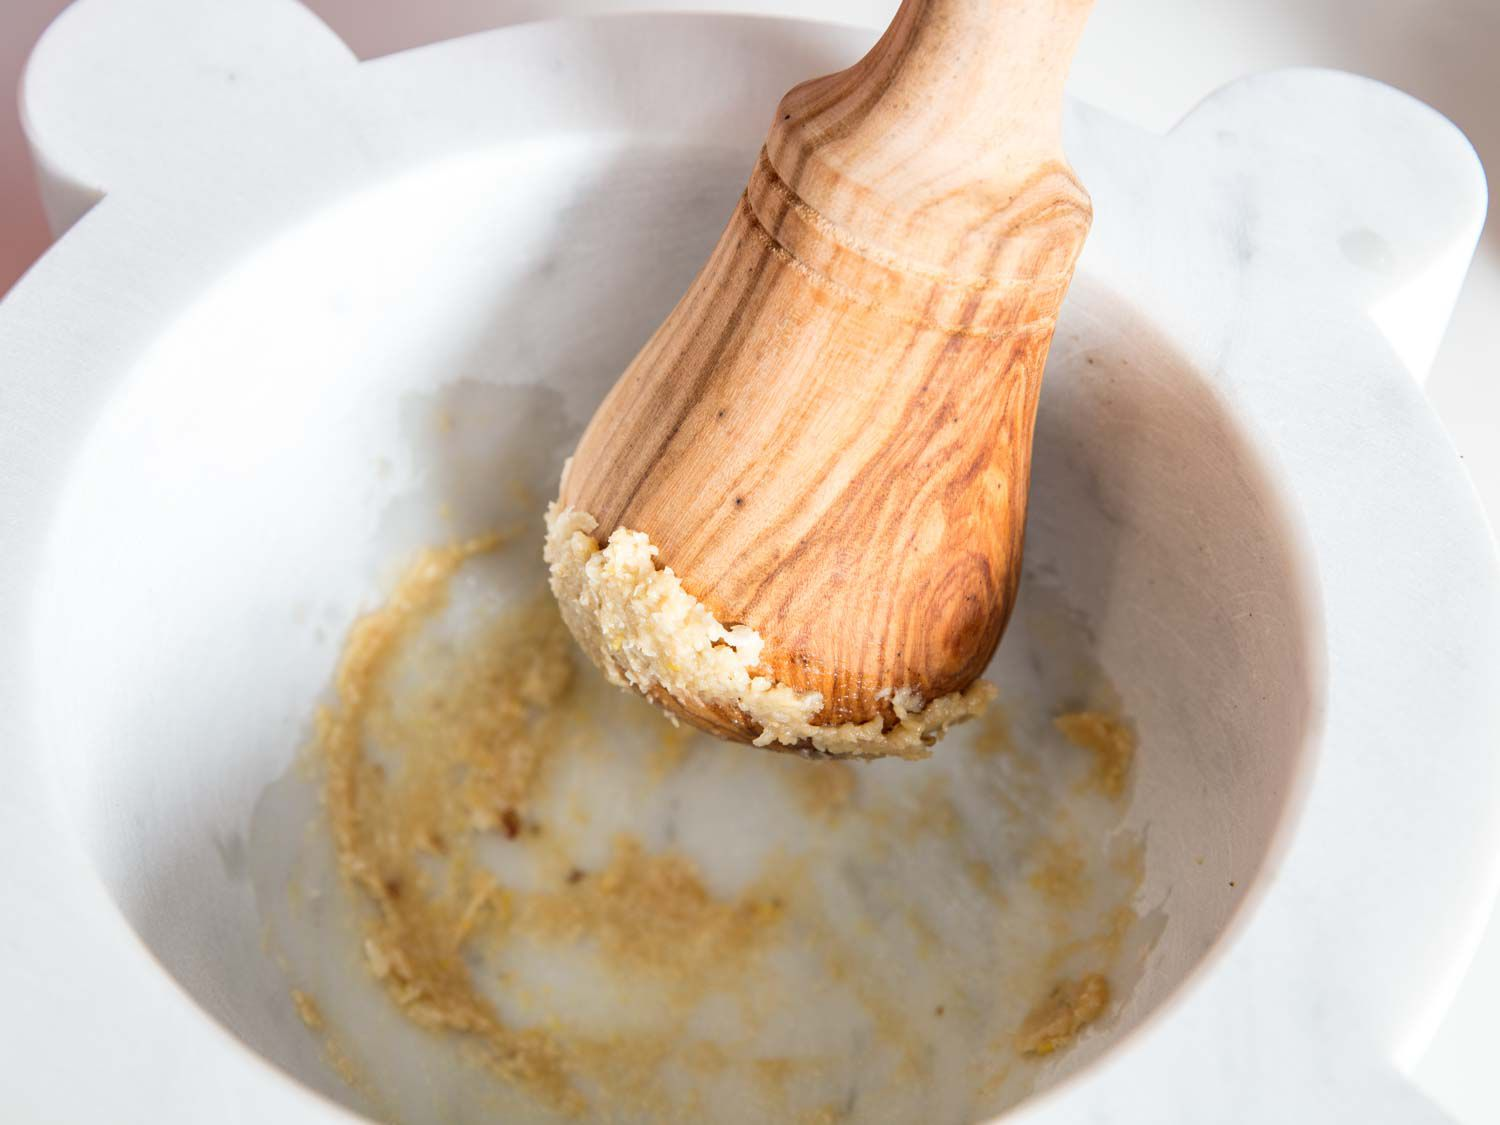 Pounding garlic to a paste using a marble mortar and wooden pestle.